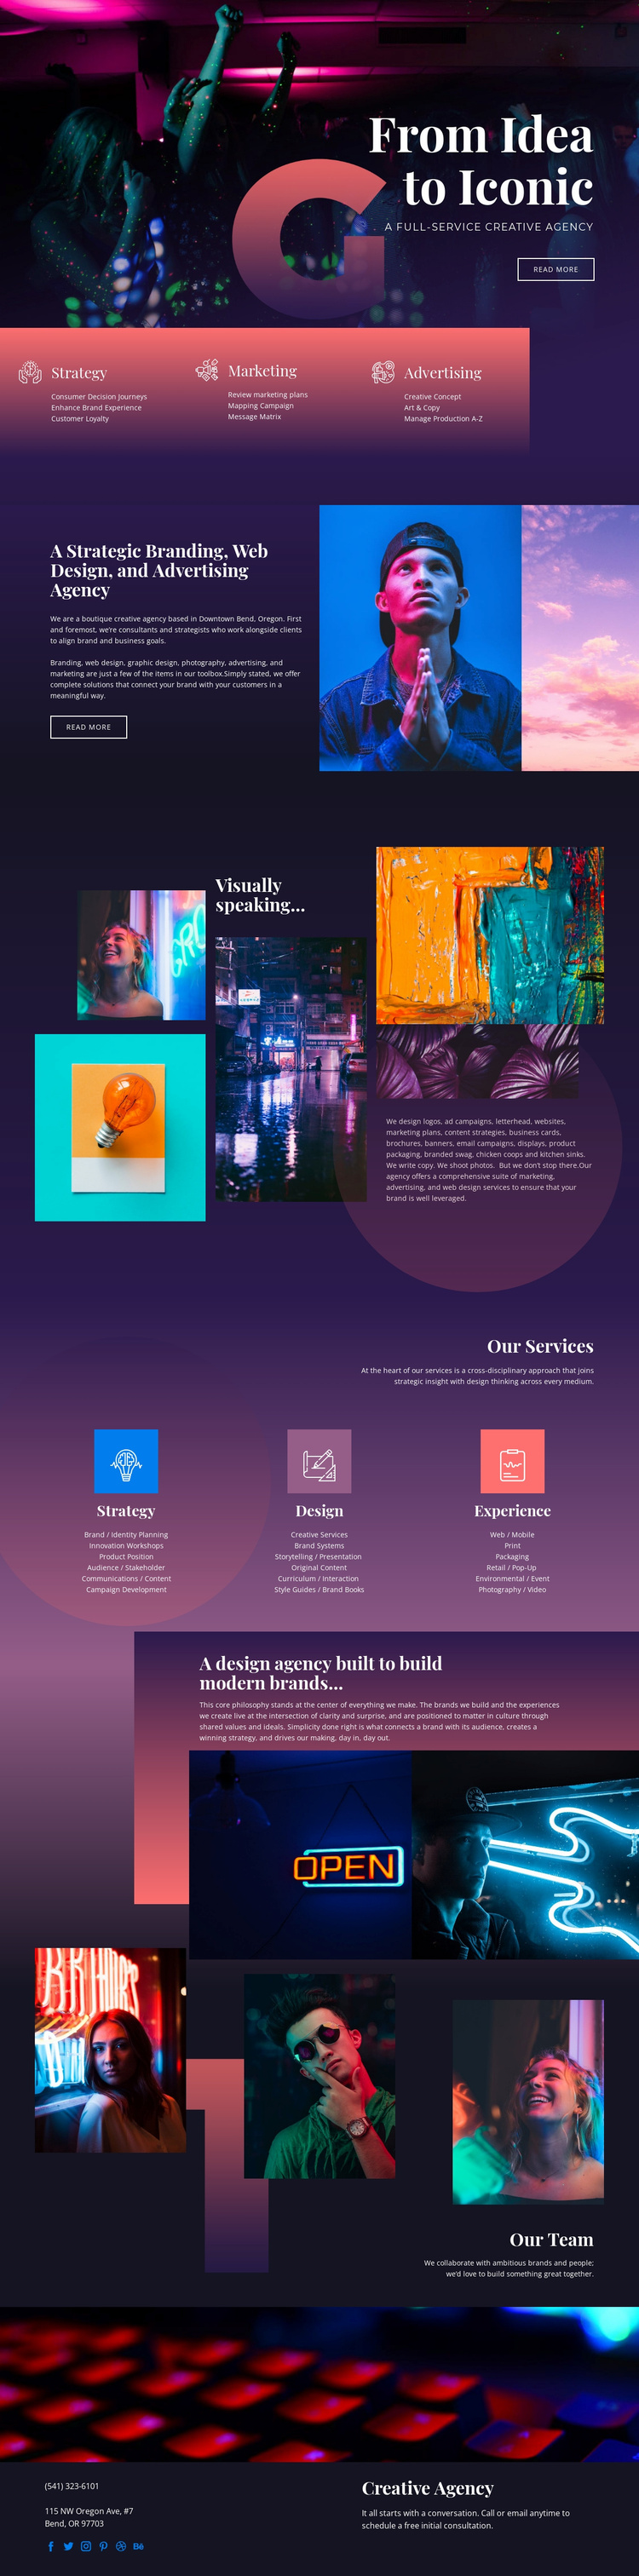 Free download the biggest collection of website templates, layouts and themes. Iconic Ideas Of Art Website Template